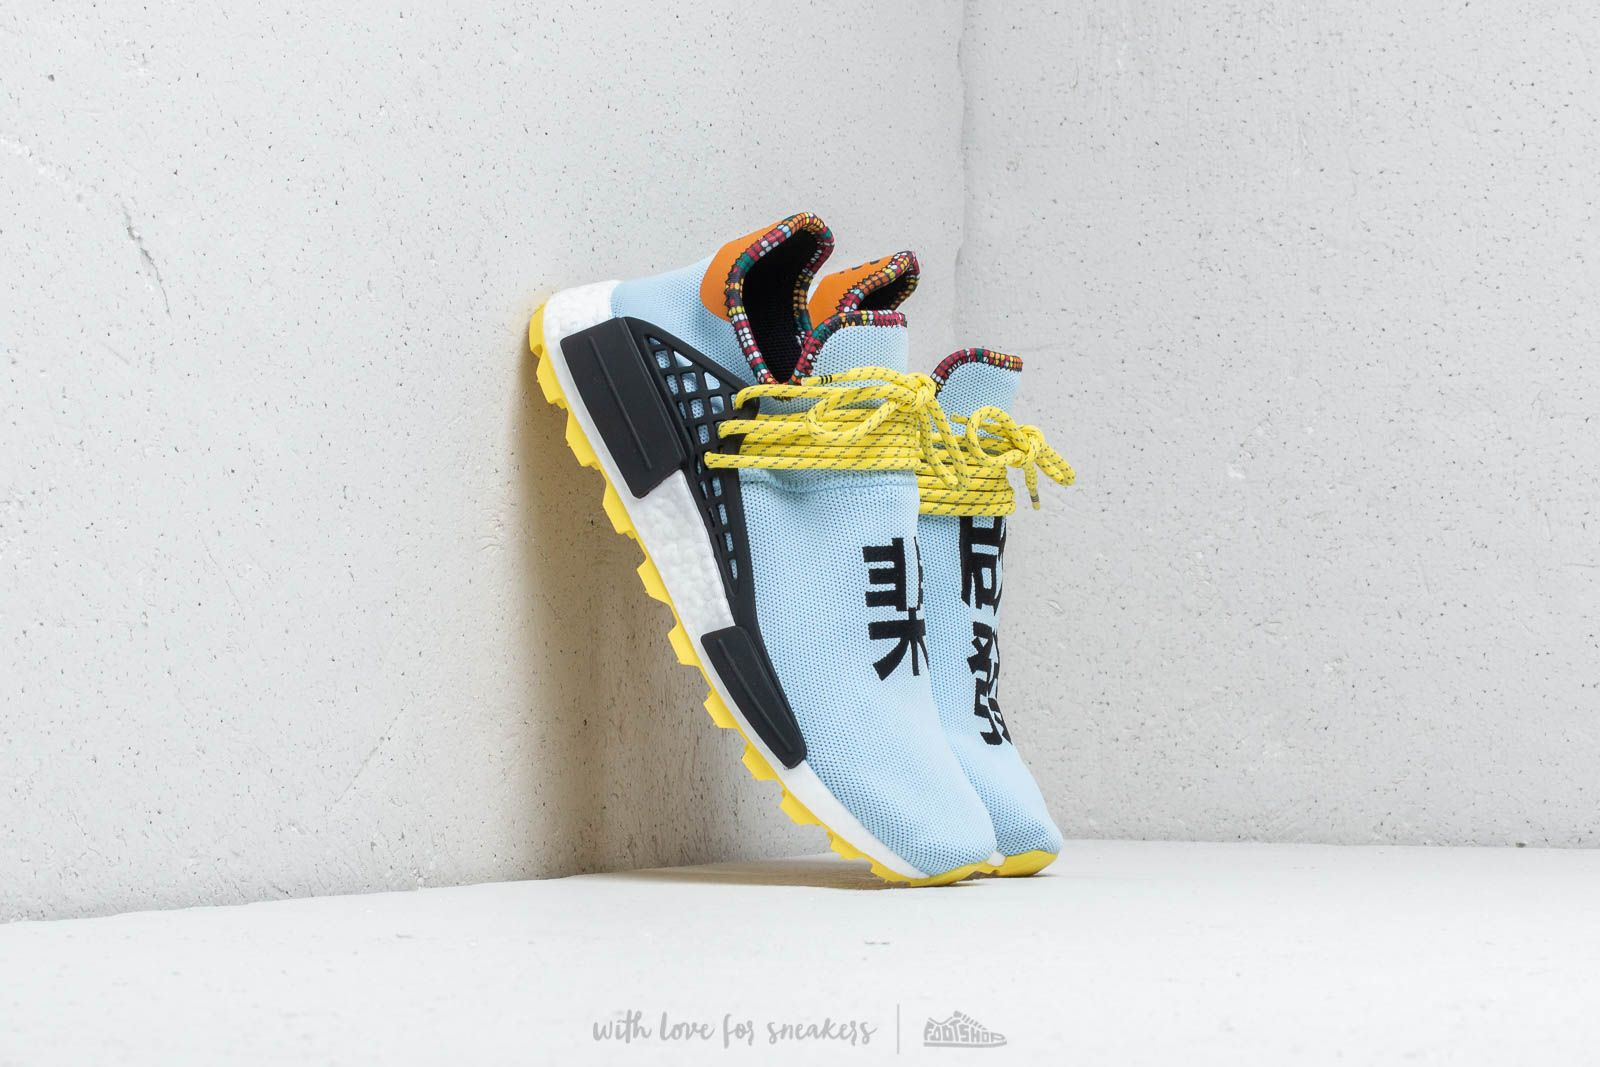 b7a640efc adidas x Pharrell Williams Solar Hu NMD Clear Sky  Core Black  Bold Orange